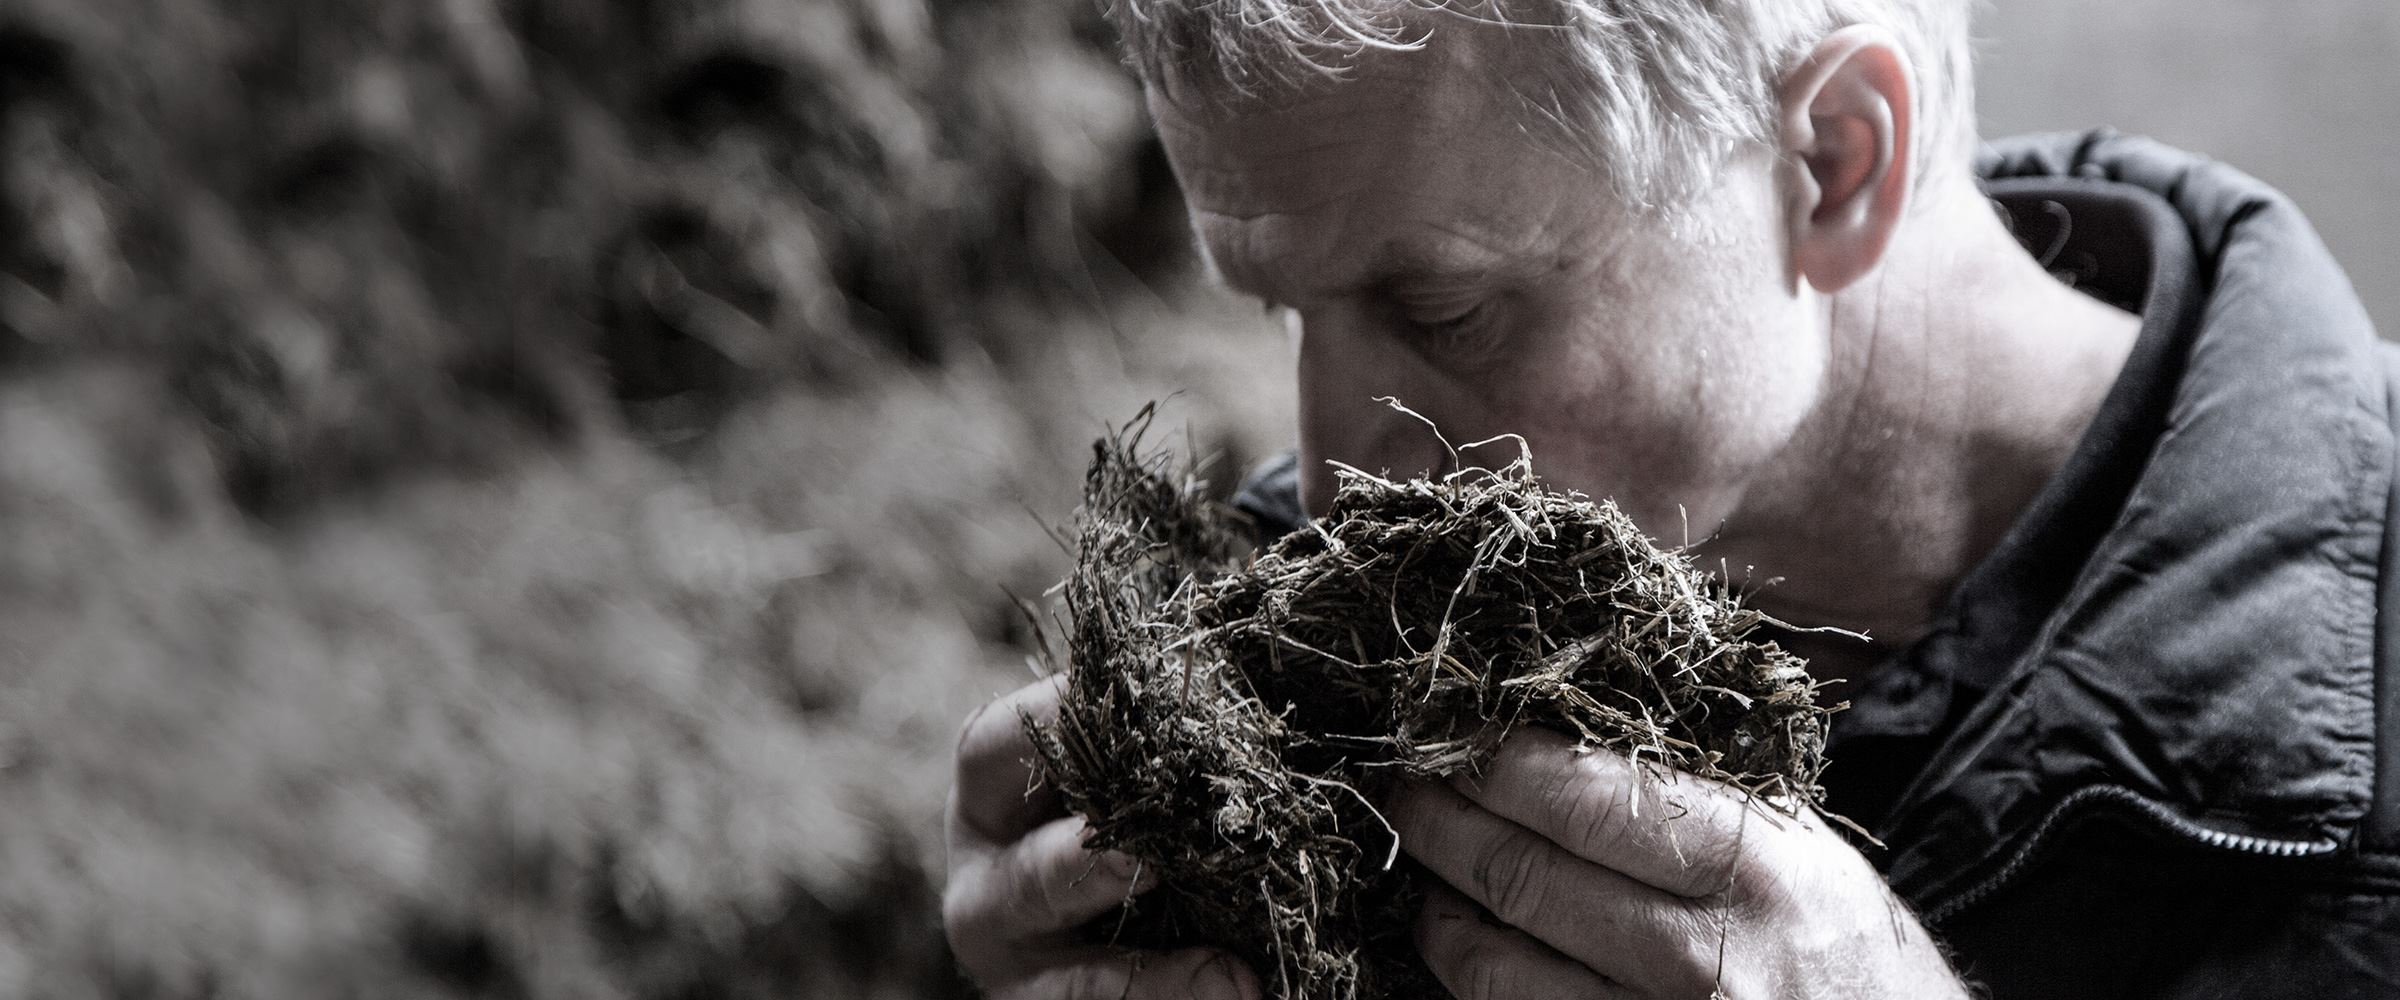 A farmer smelling clumps of hay